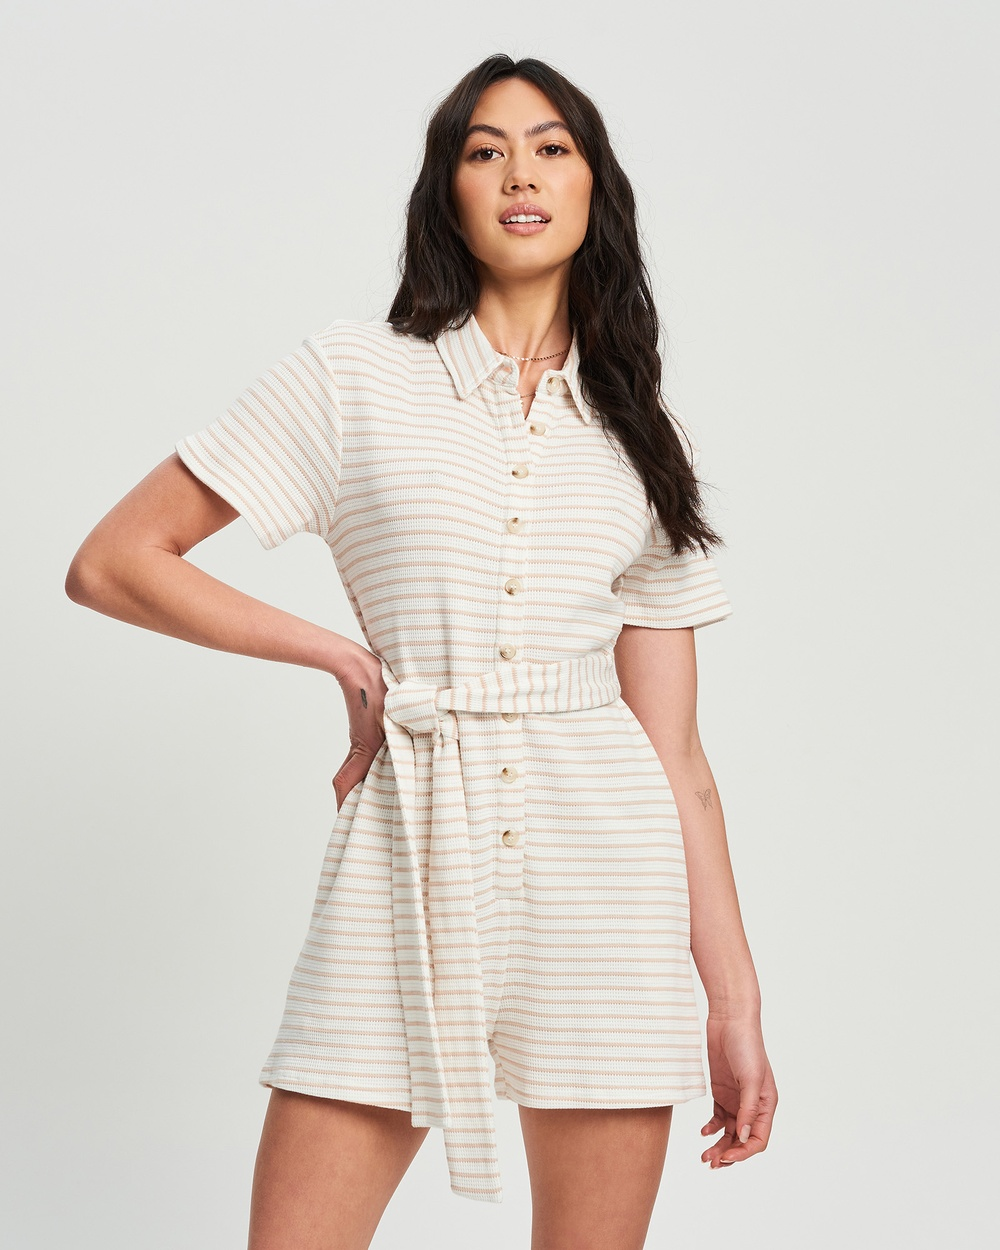 Calli Weekend Playsuit Jumpsuits & Playsuits White And Neutral Stripe